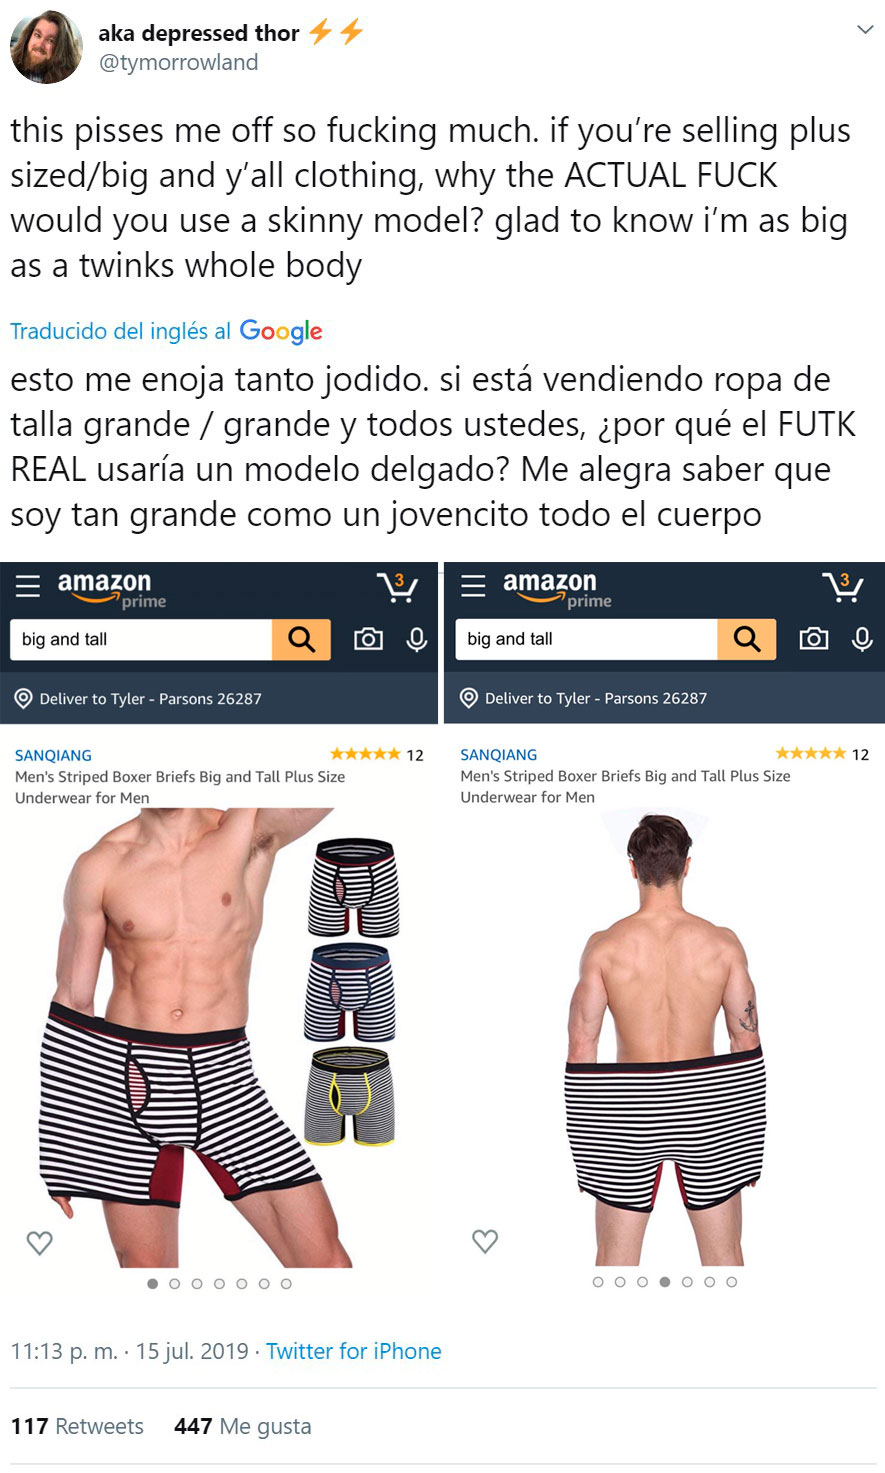 Estúpido y gordofóbico Amazon...